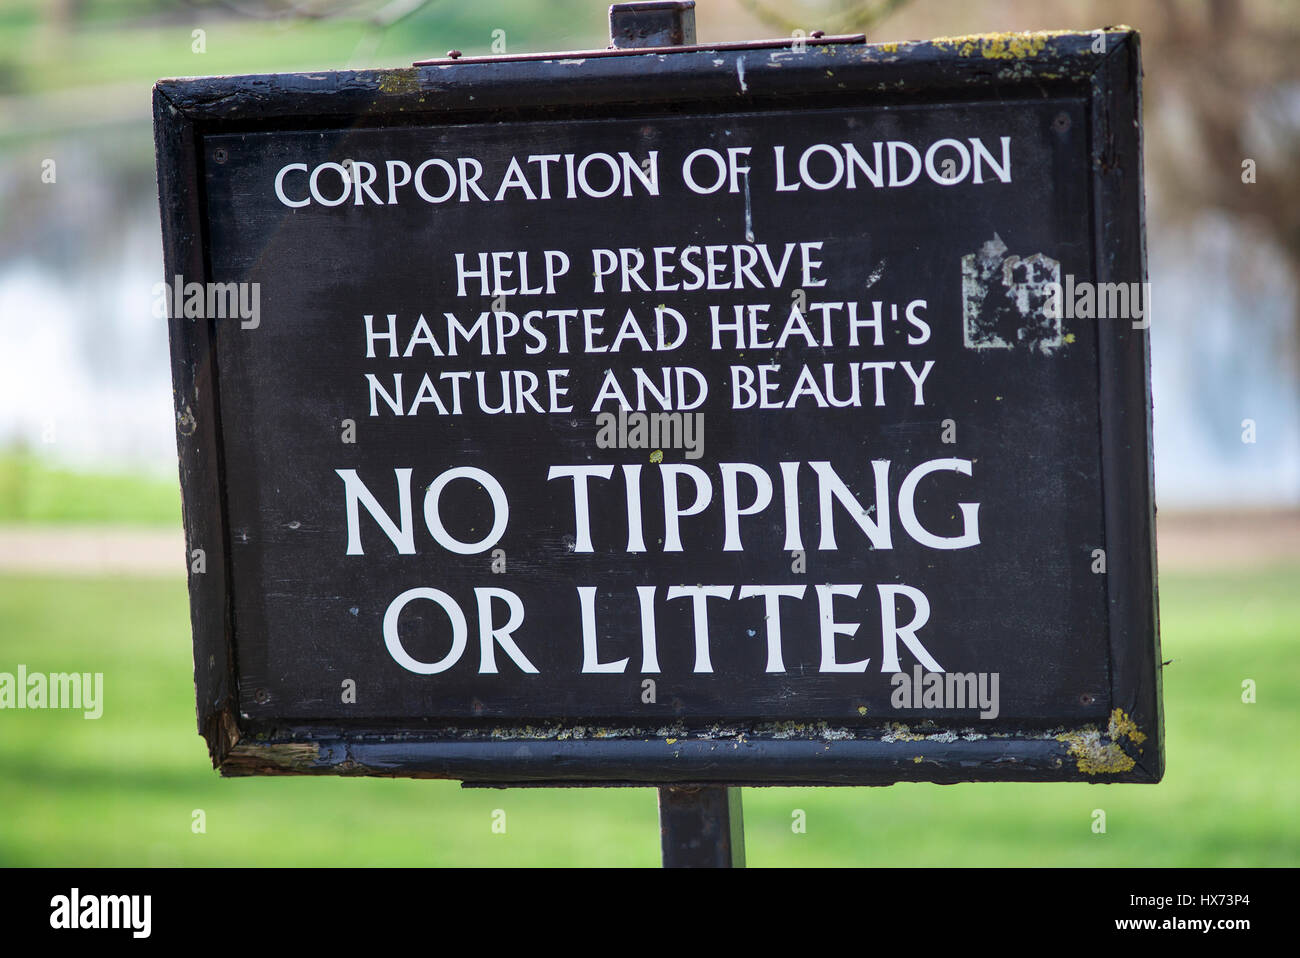 corporation of London sign. No tipping or litter, help preserve hampstead heath's nature and beauty - Stock Image